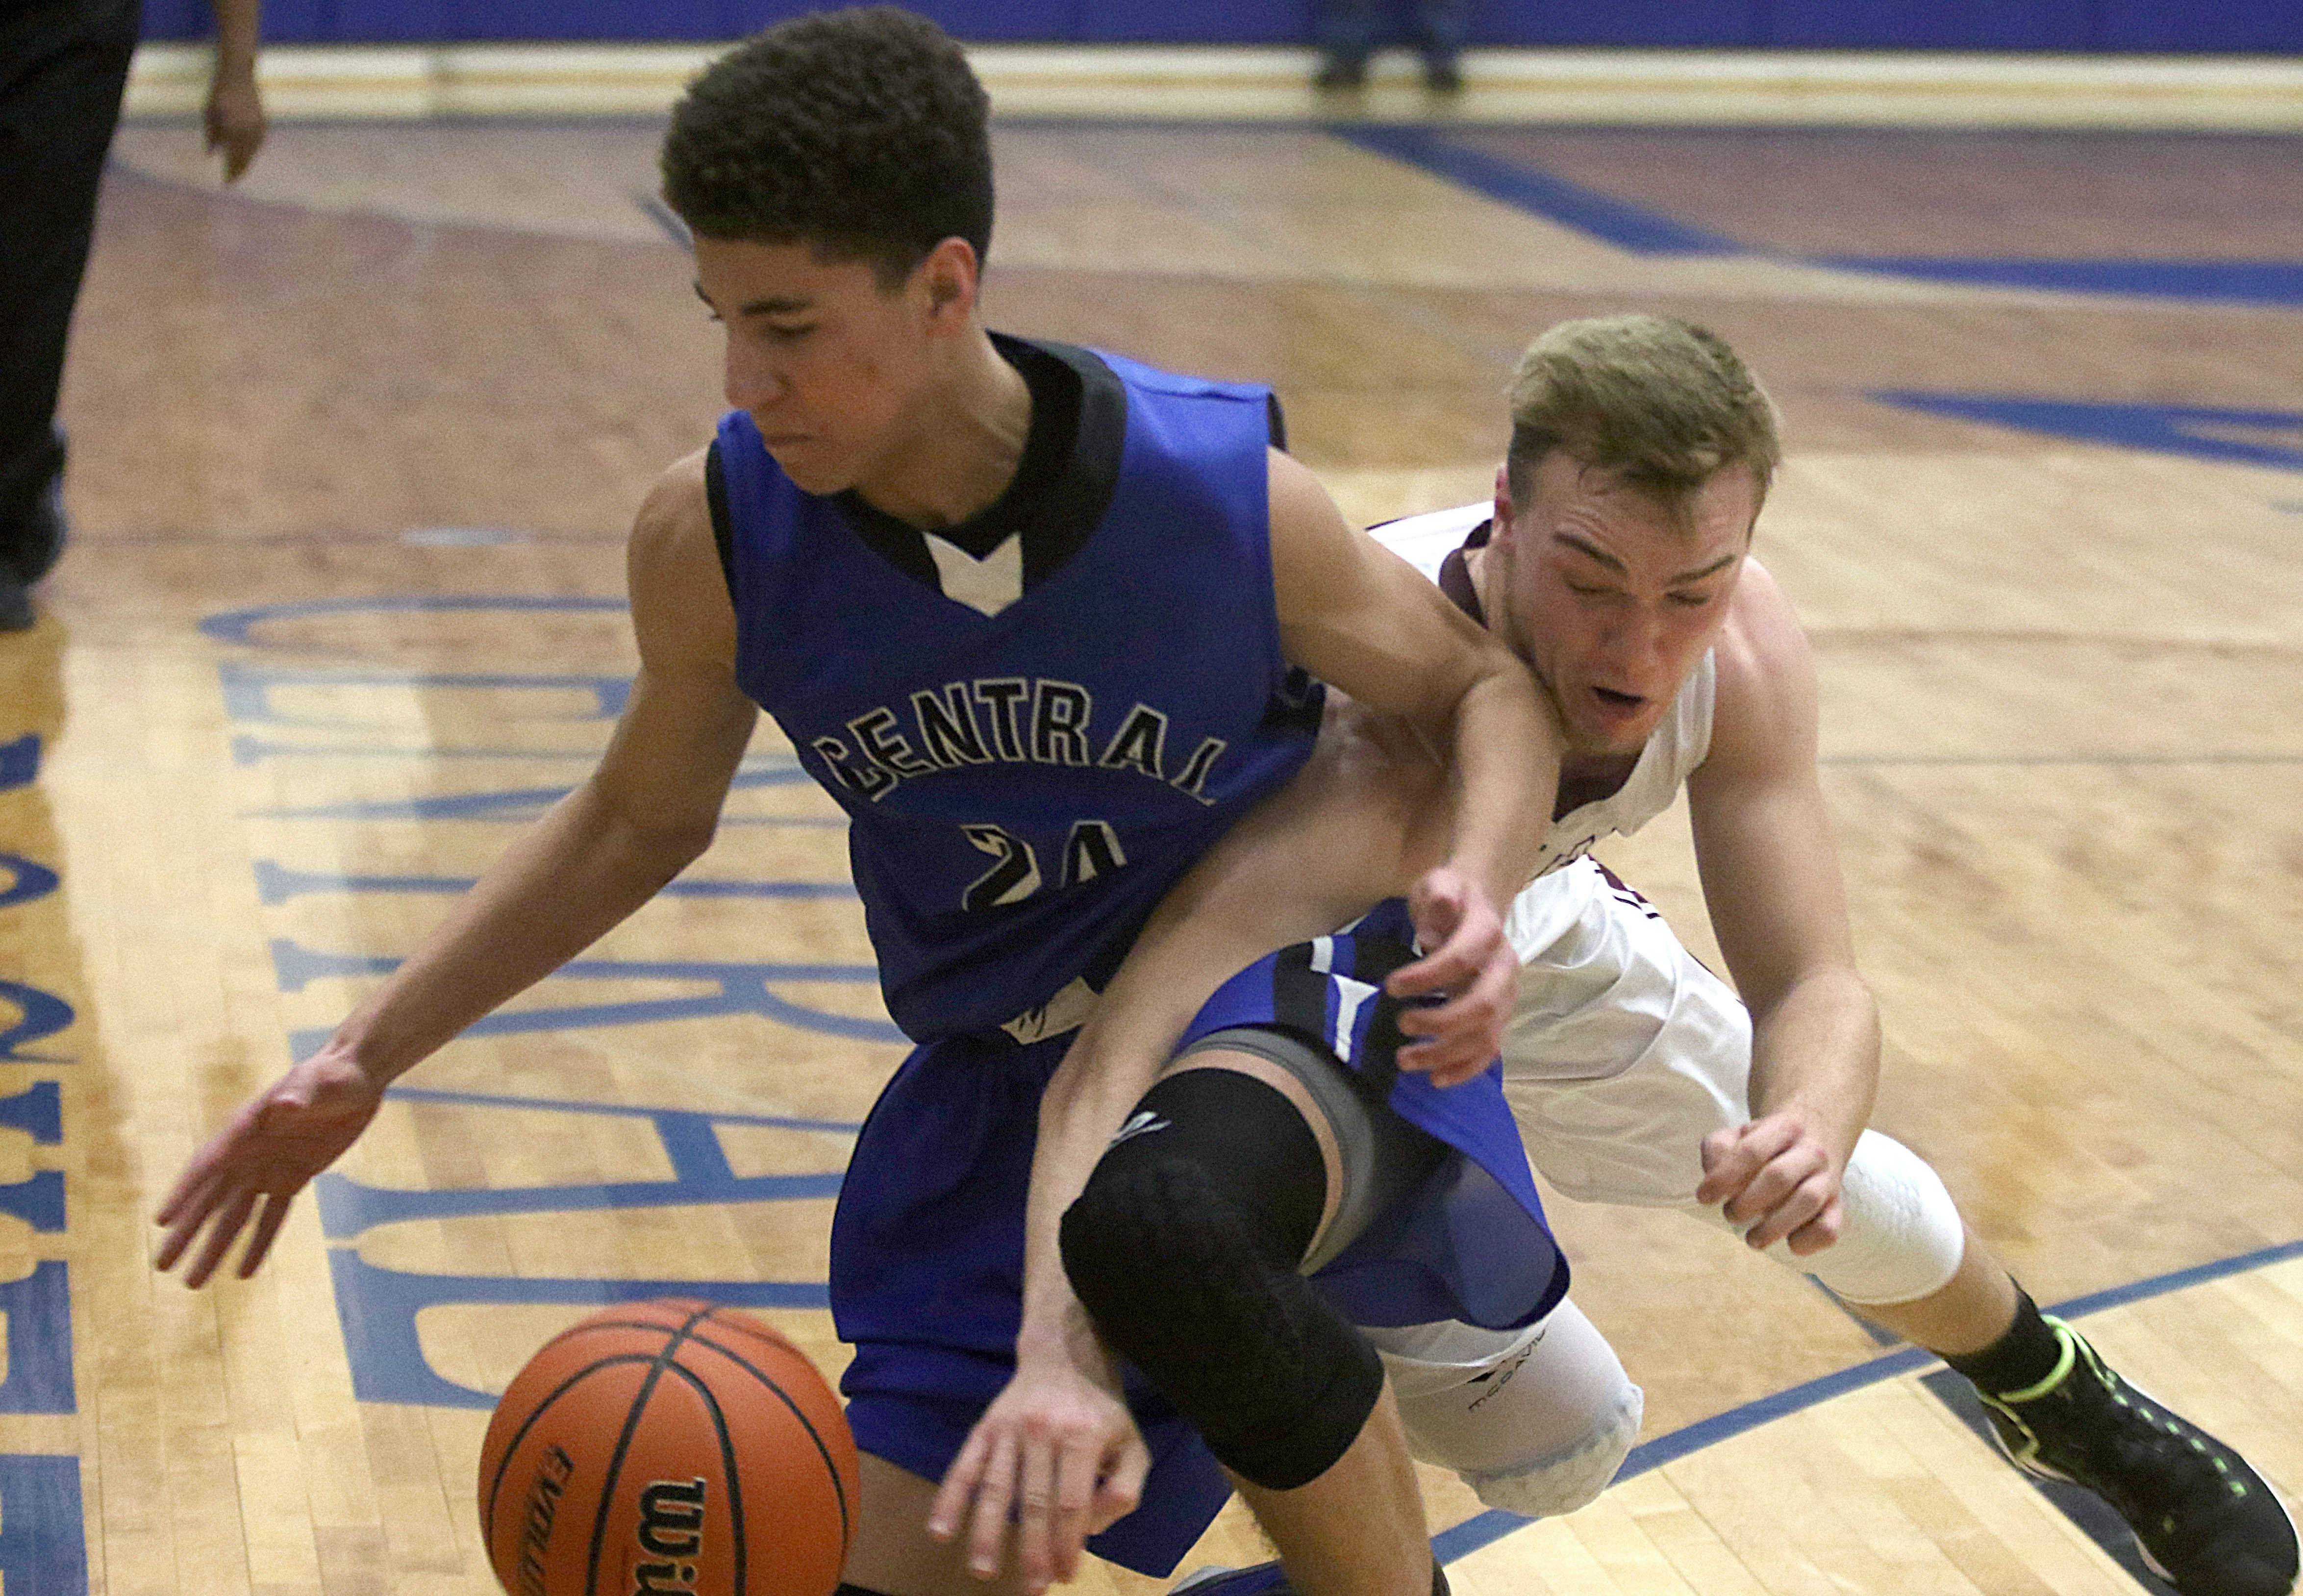 Burlington Central's Patrick Mayfield, left, battles Marengo's Connor Wascher for the ball during the title game of the MLK Classic tournament at Burlington Monday night.